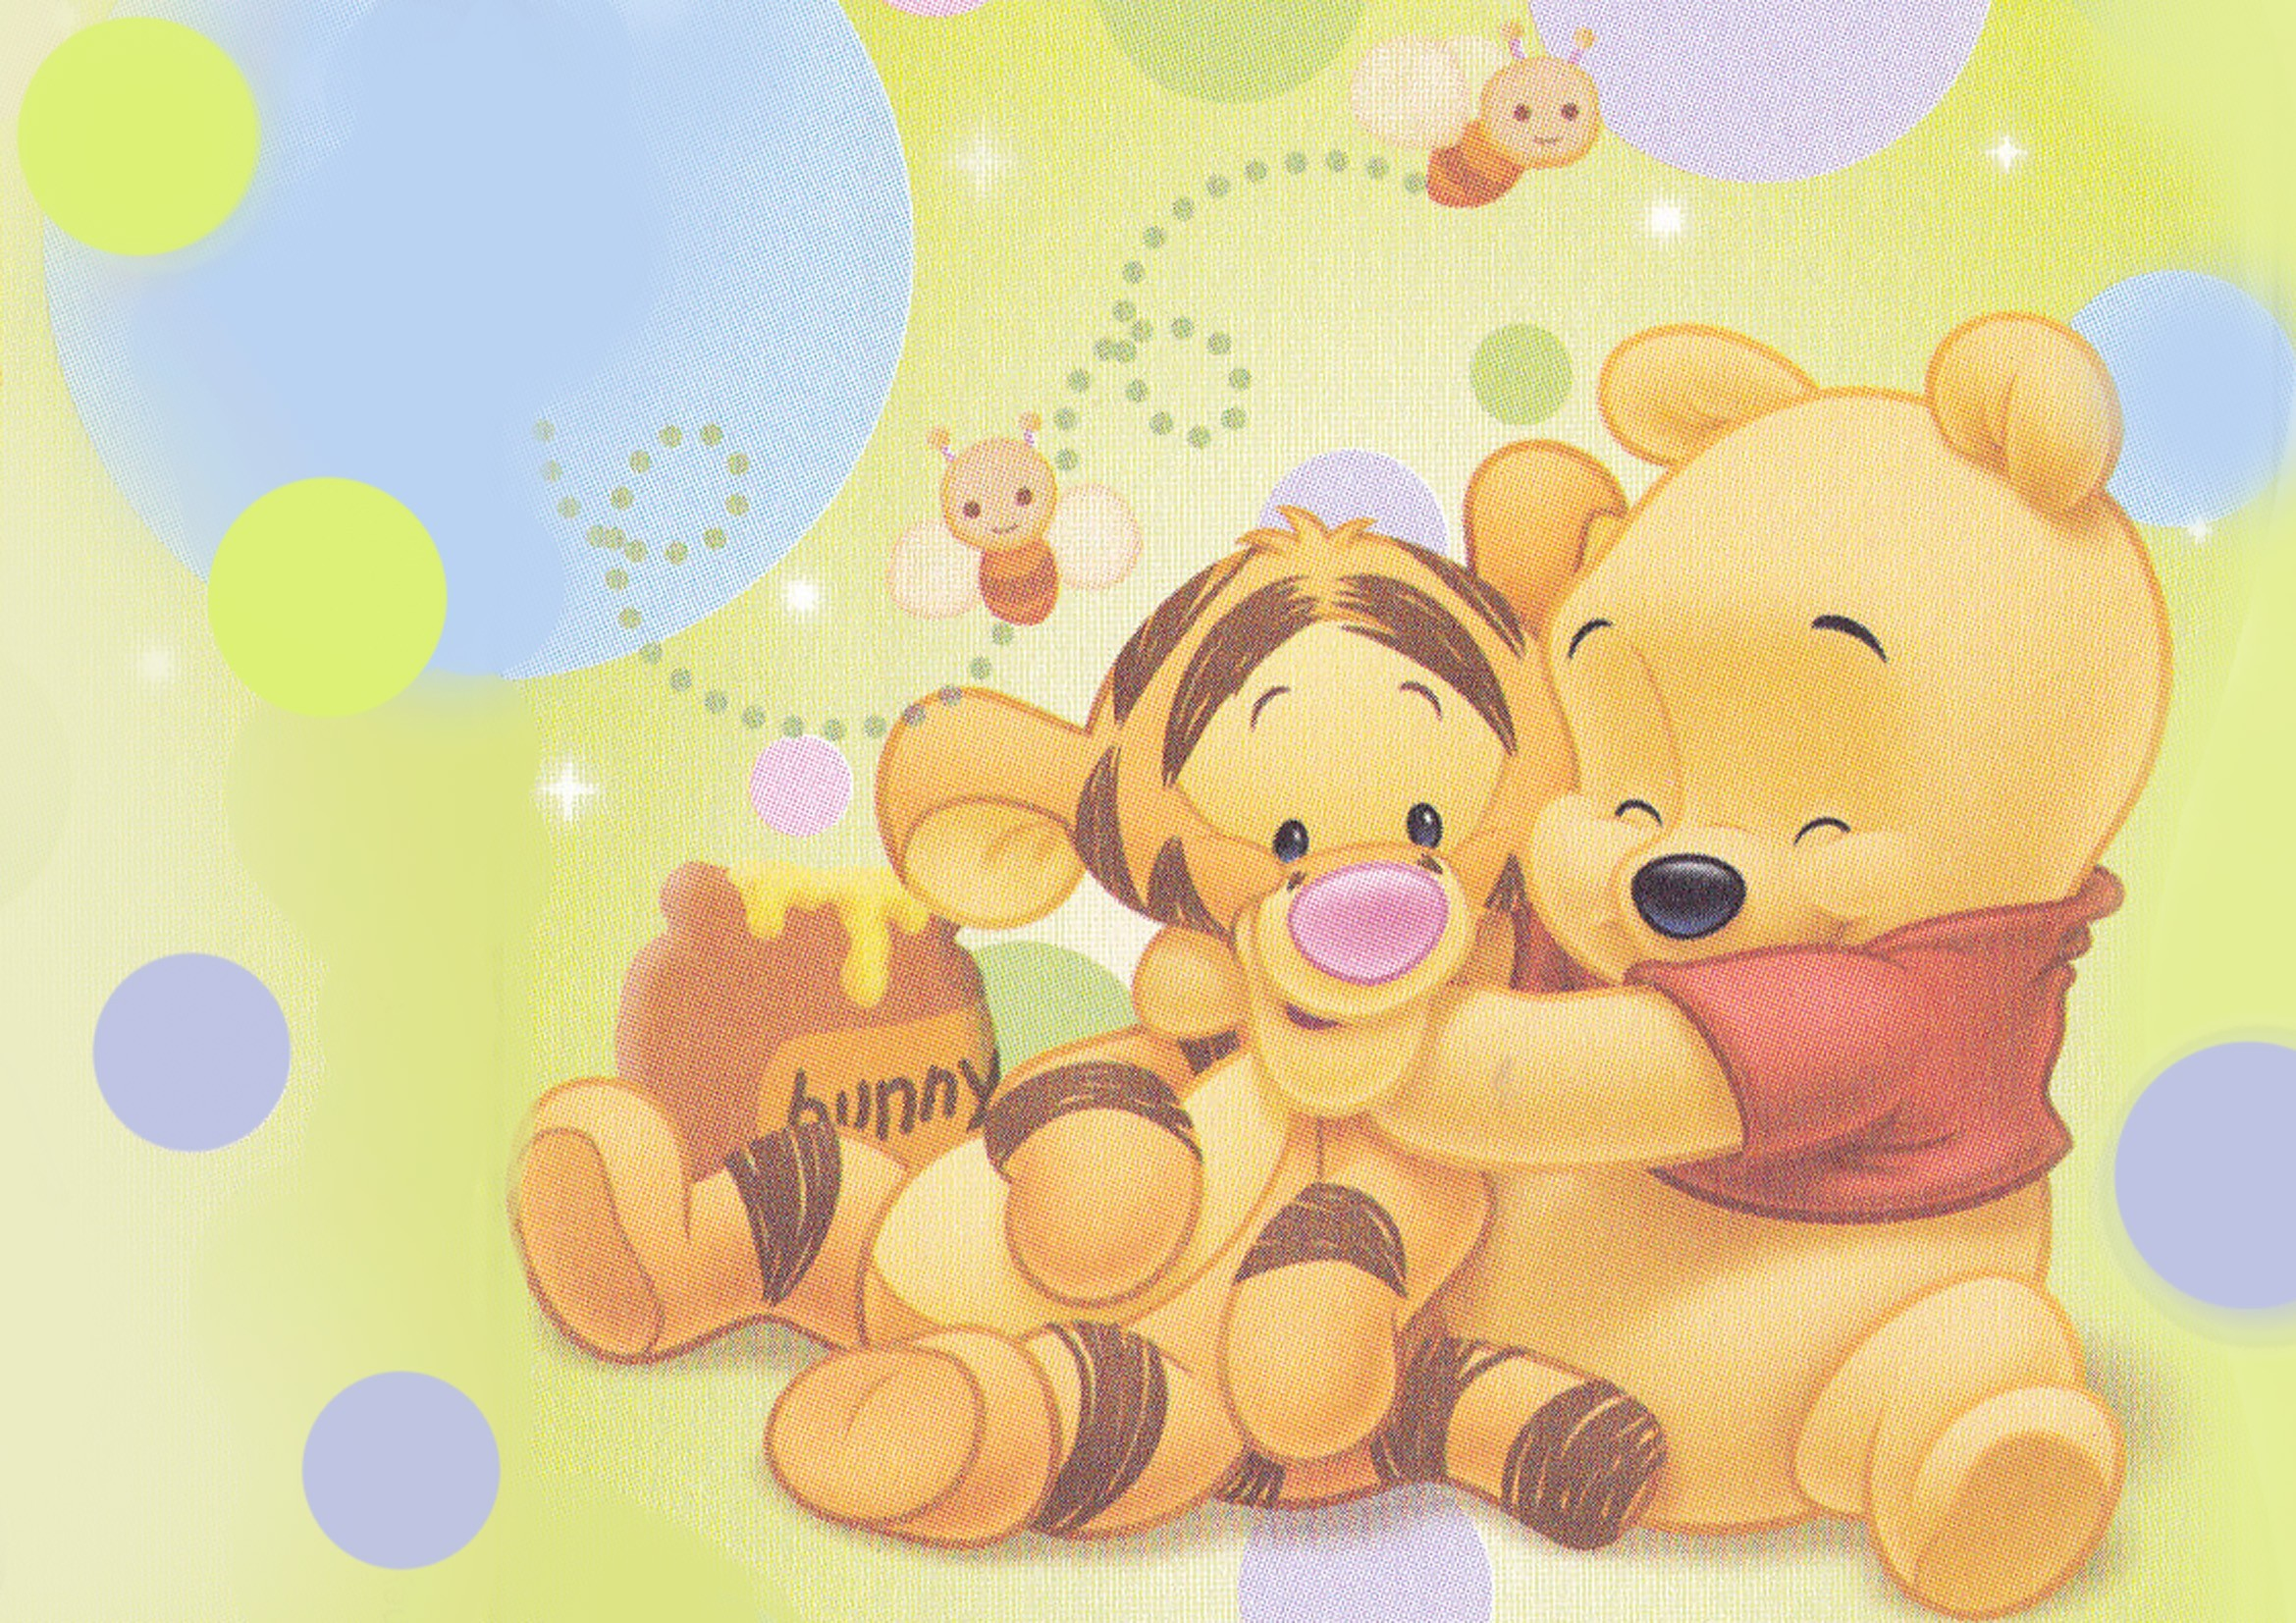 Winnie the Pooh HD Wallpapers and Backgrounds | HD Wallpapers | Pinterest |  Wallpaper